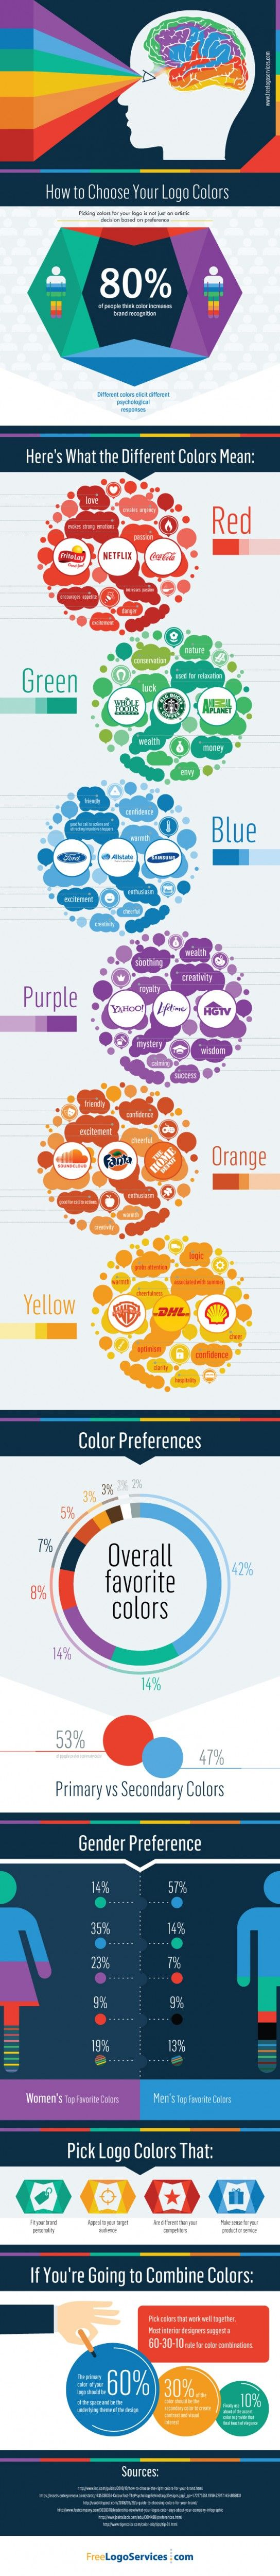 How to Use Basic Psychology to Choose The Best Color For Your Logo - @redwebdesign